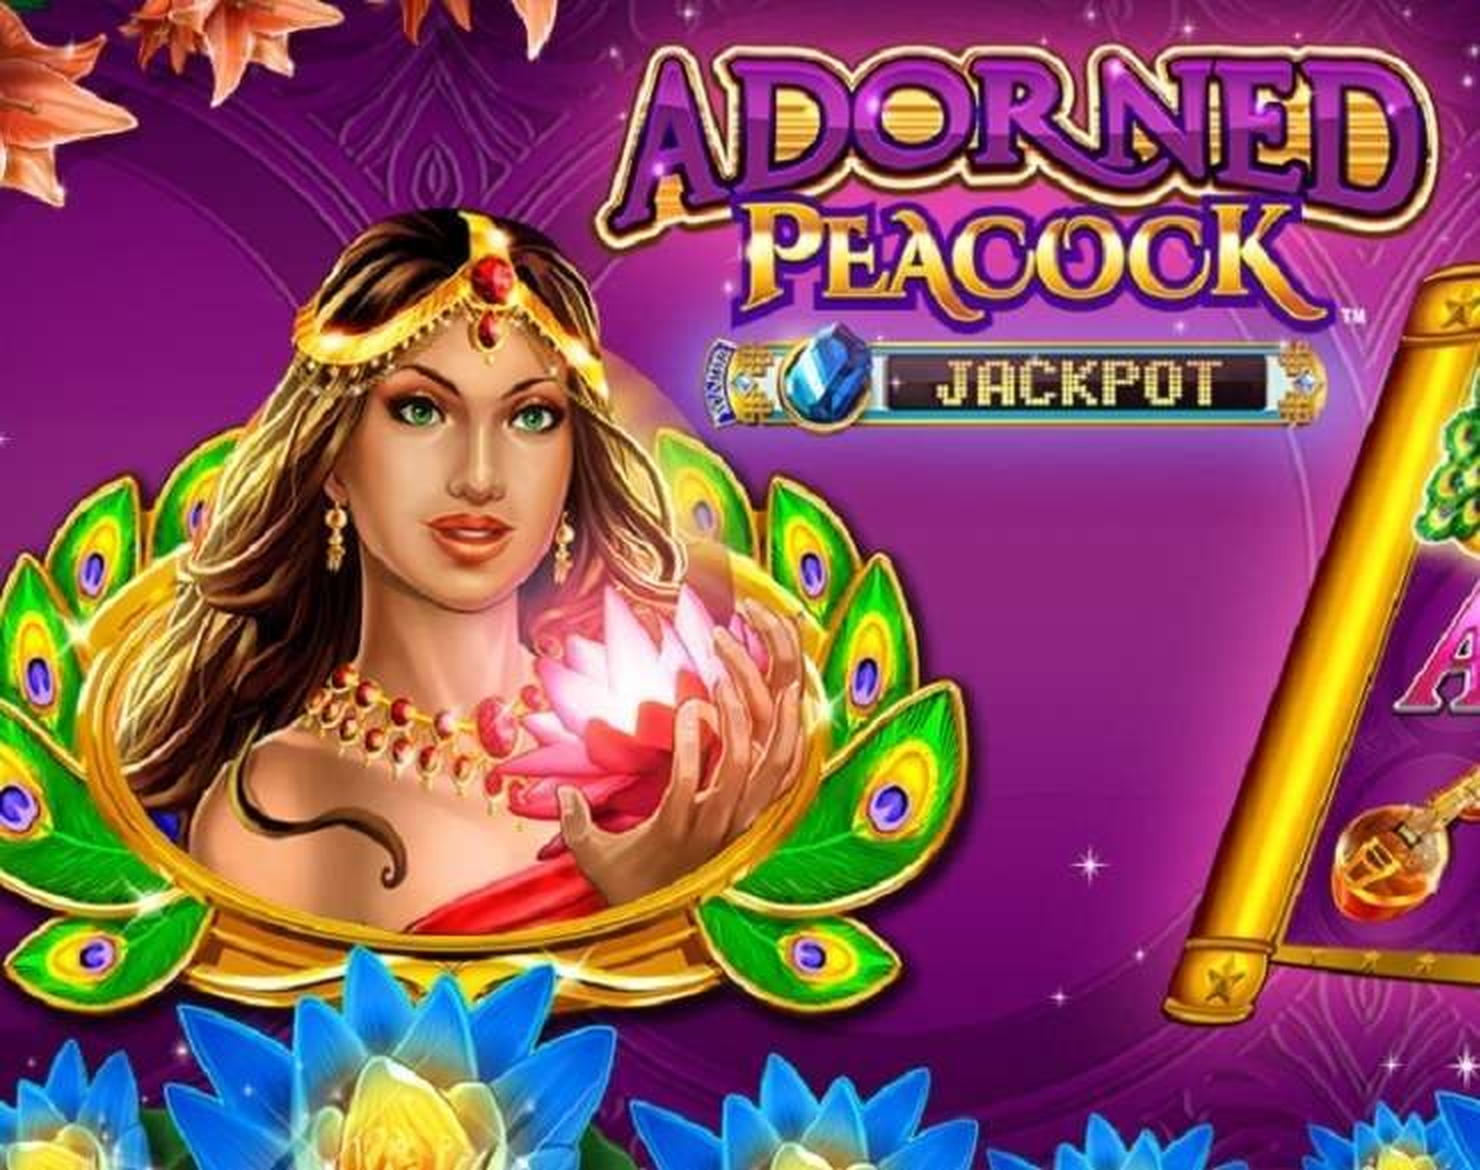 The Adorned Peacock Online Slot Demo Game by Konami